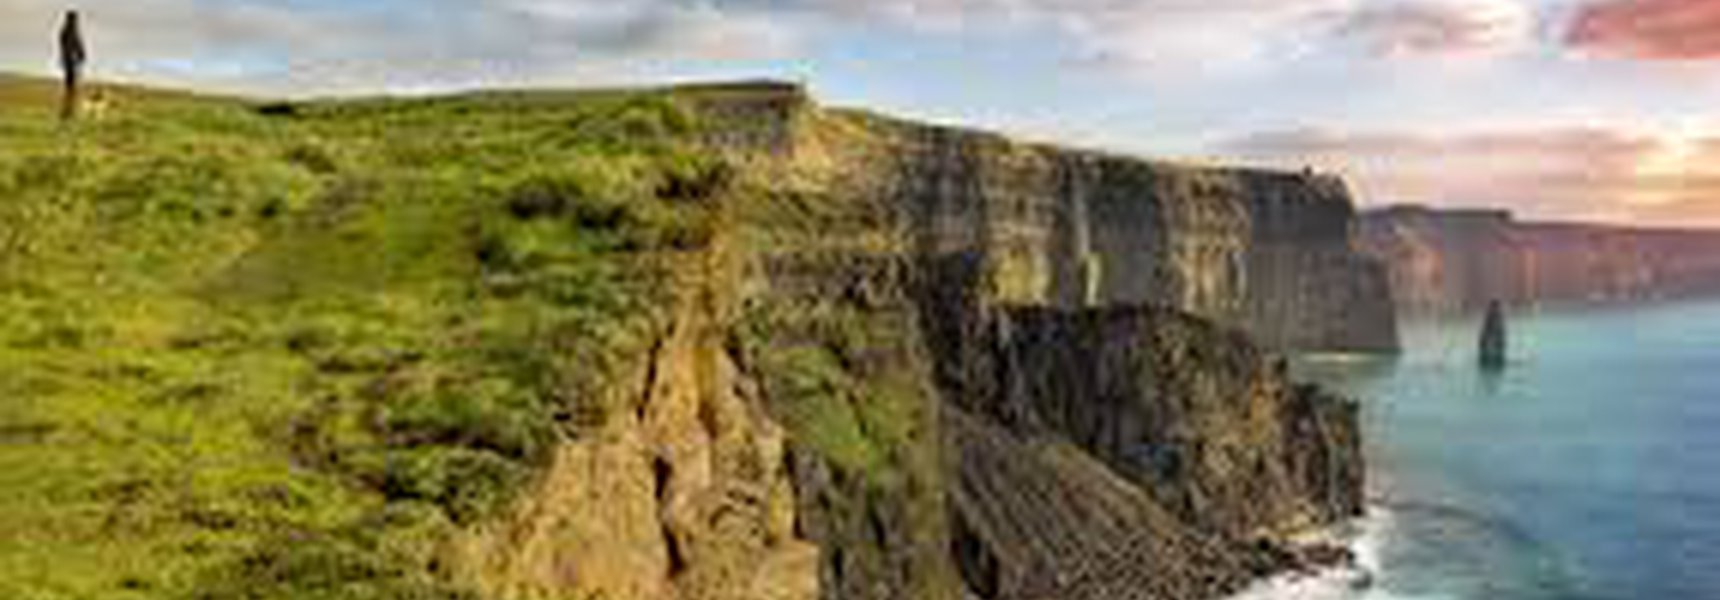 Weekend Trips - Cliffs of Moher